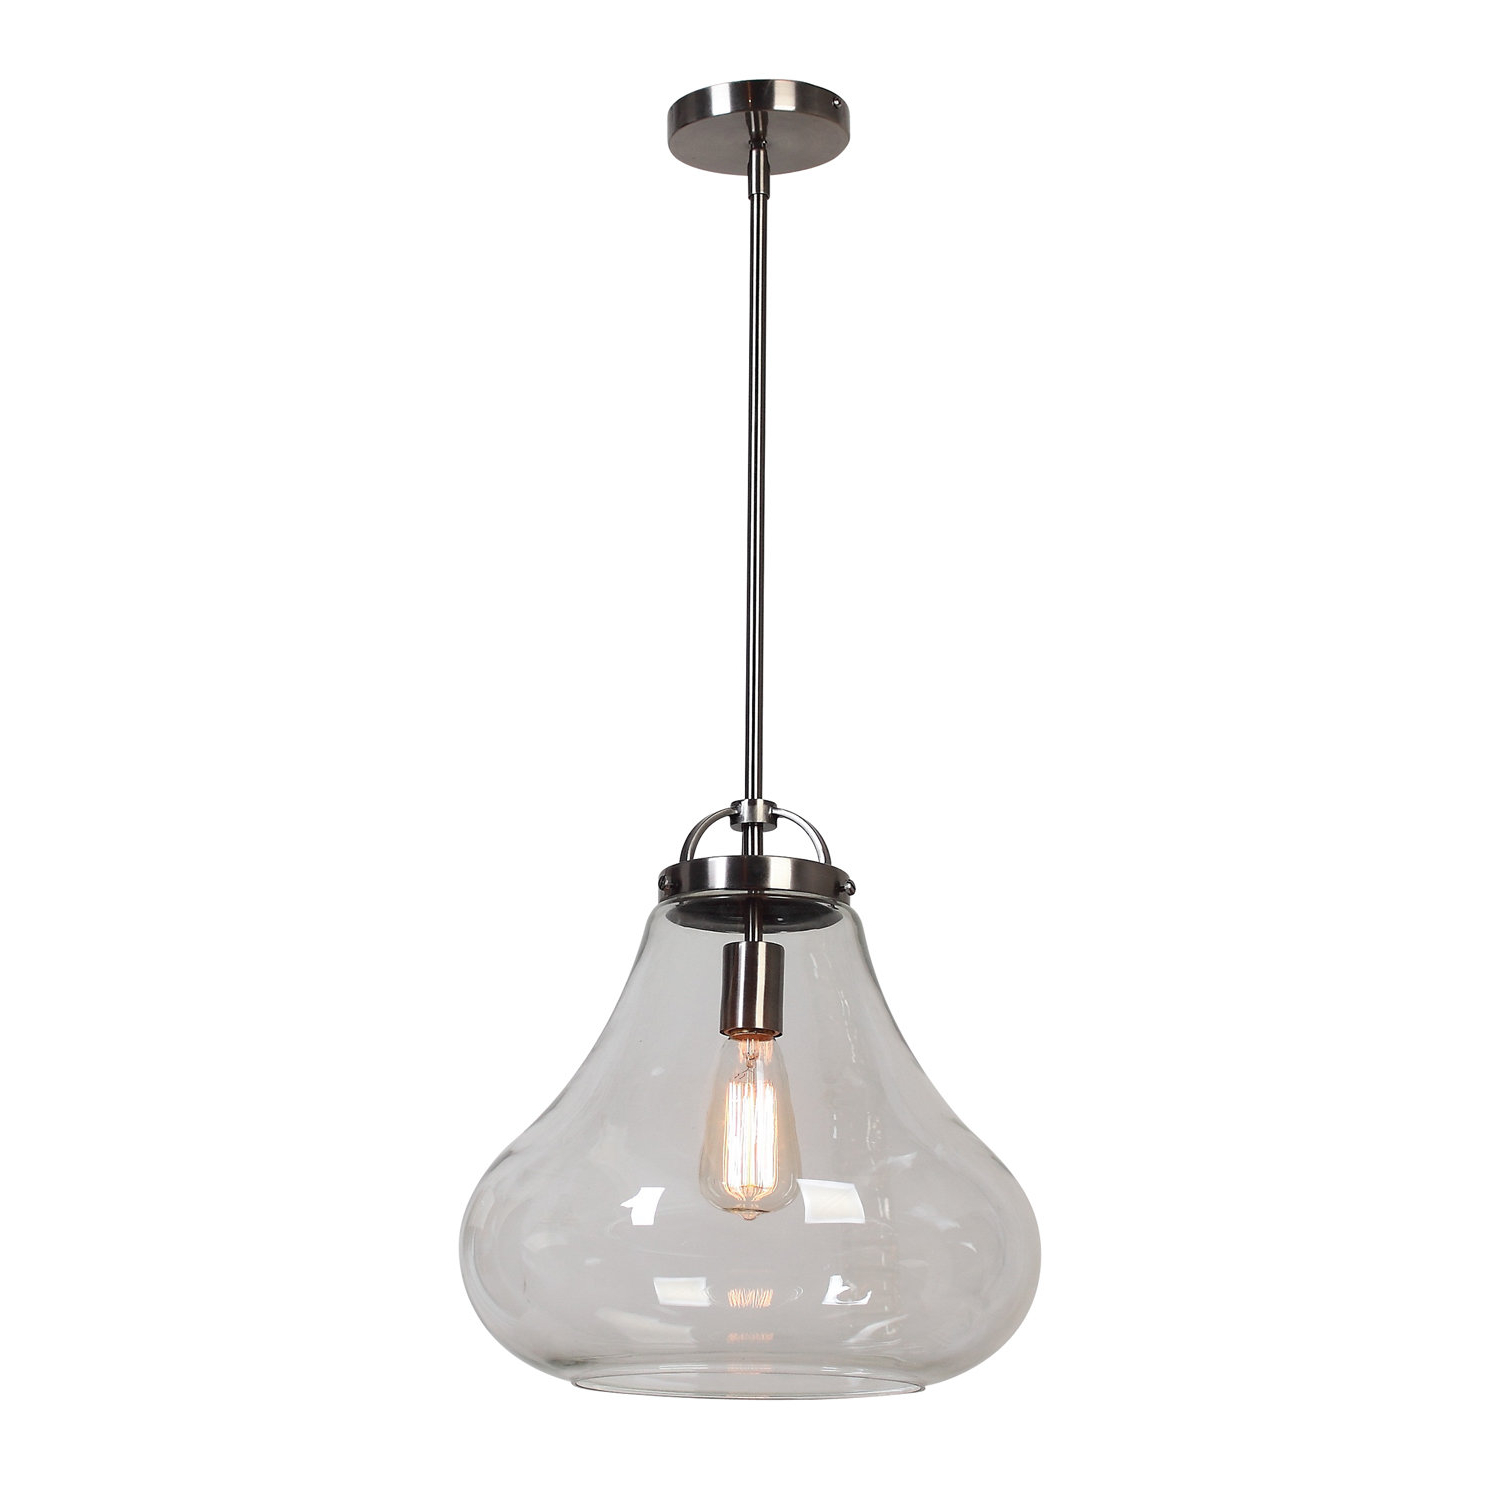 Weatherspoon 1 Light Schoolhouse Pendant Throughout Best And Newest Kimsey 1 Light Teardrop Pendants (View 23 of 25)